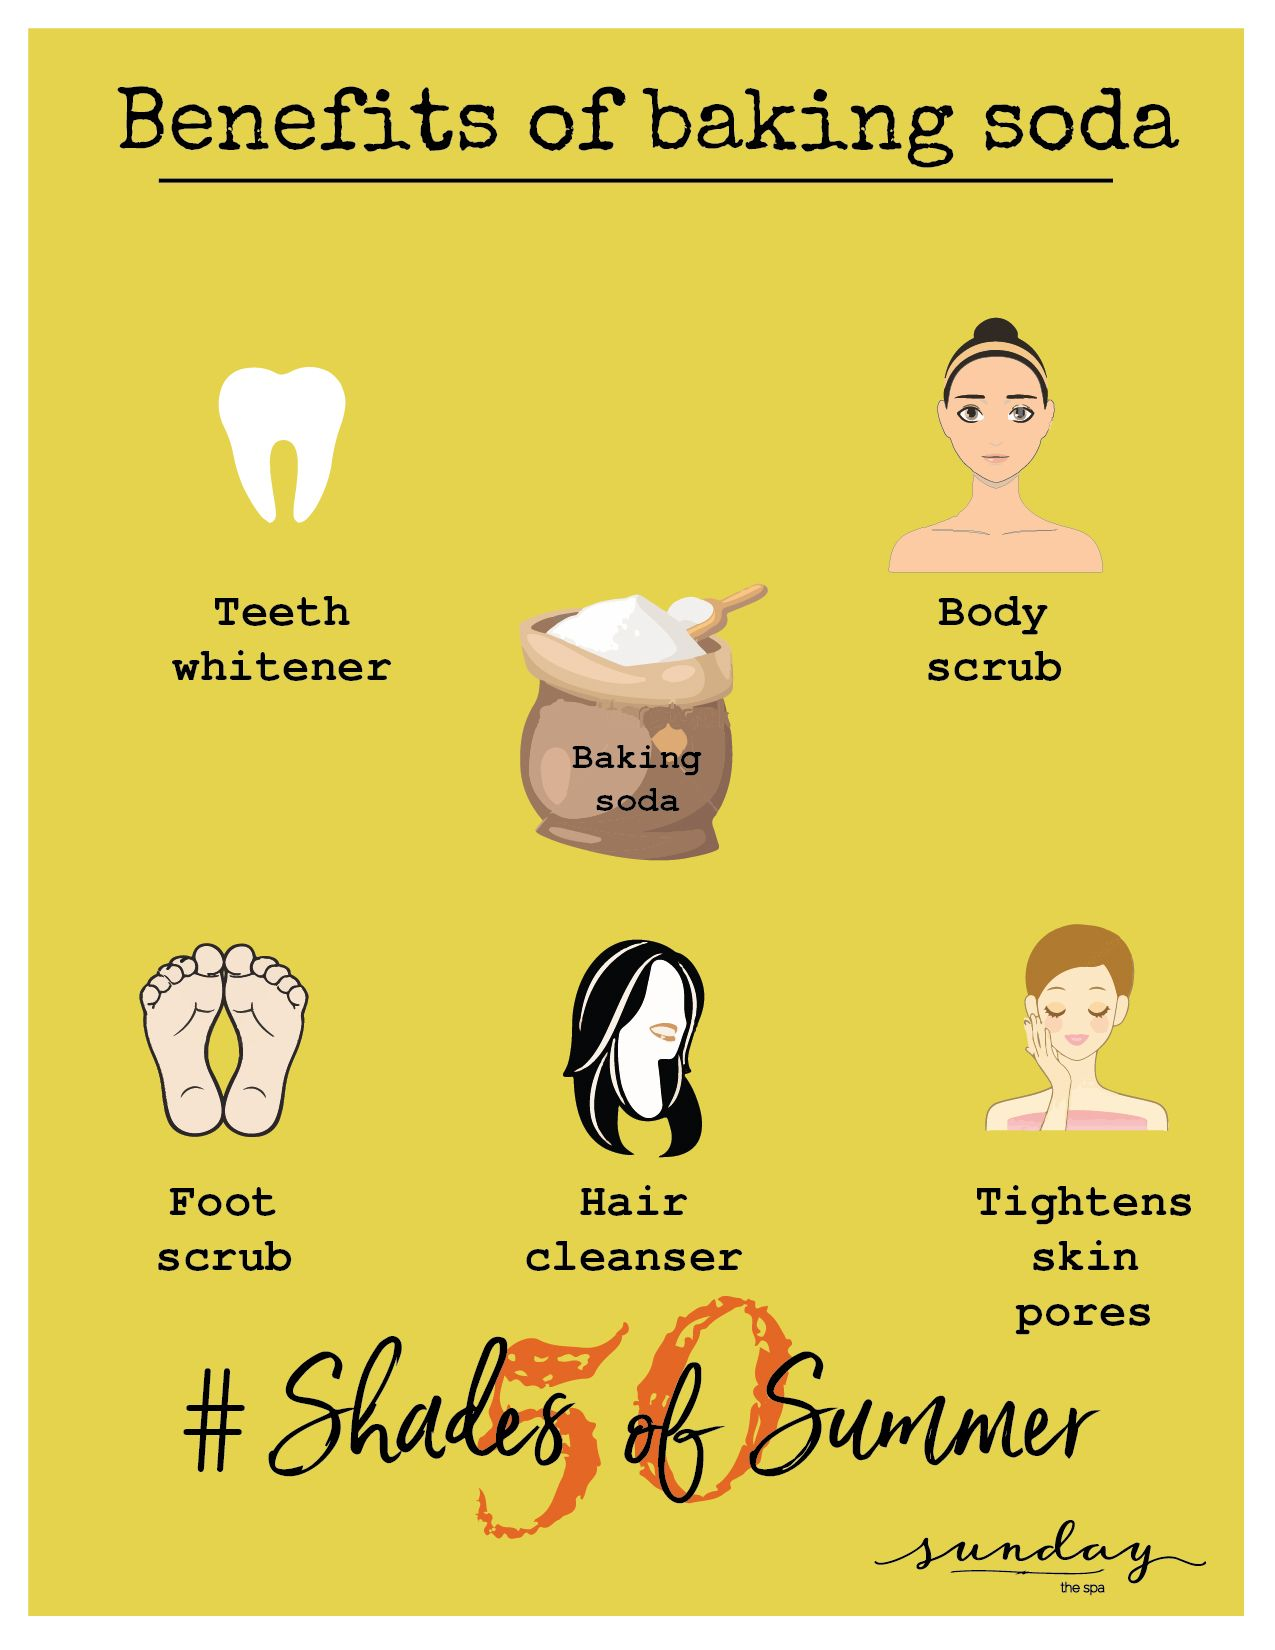 Baking soda can do much more than just baking. Add a pinch of baking soda to your daily skin care regime to get shiny hair and glowing skin :) #sundaythespa #Day20 #glowingskin #skincare #shinyhair #skincarebenefits #bakingsoda #naturalremedies #skincaretips #50shadesofsummer